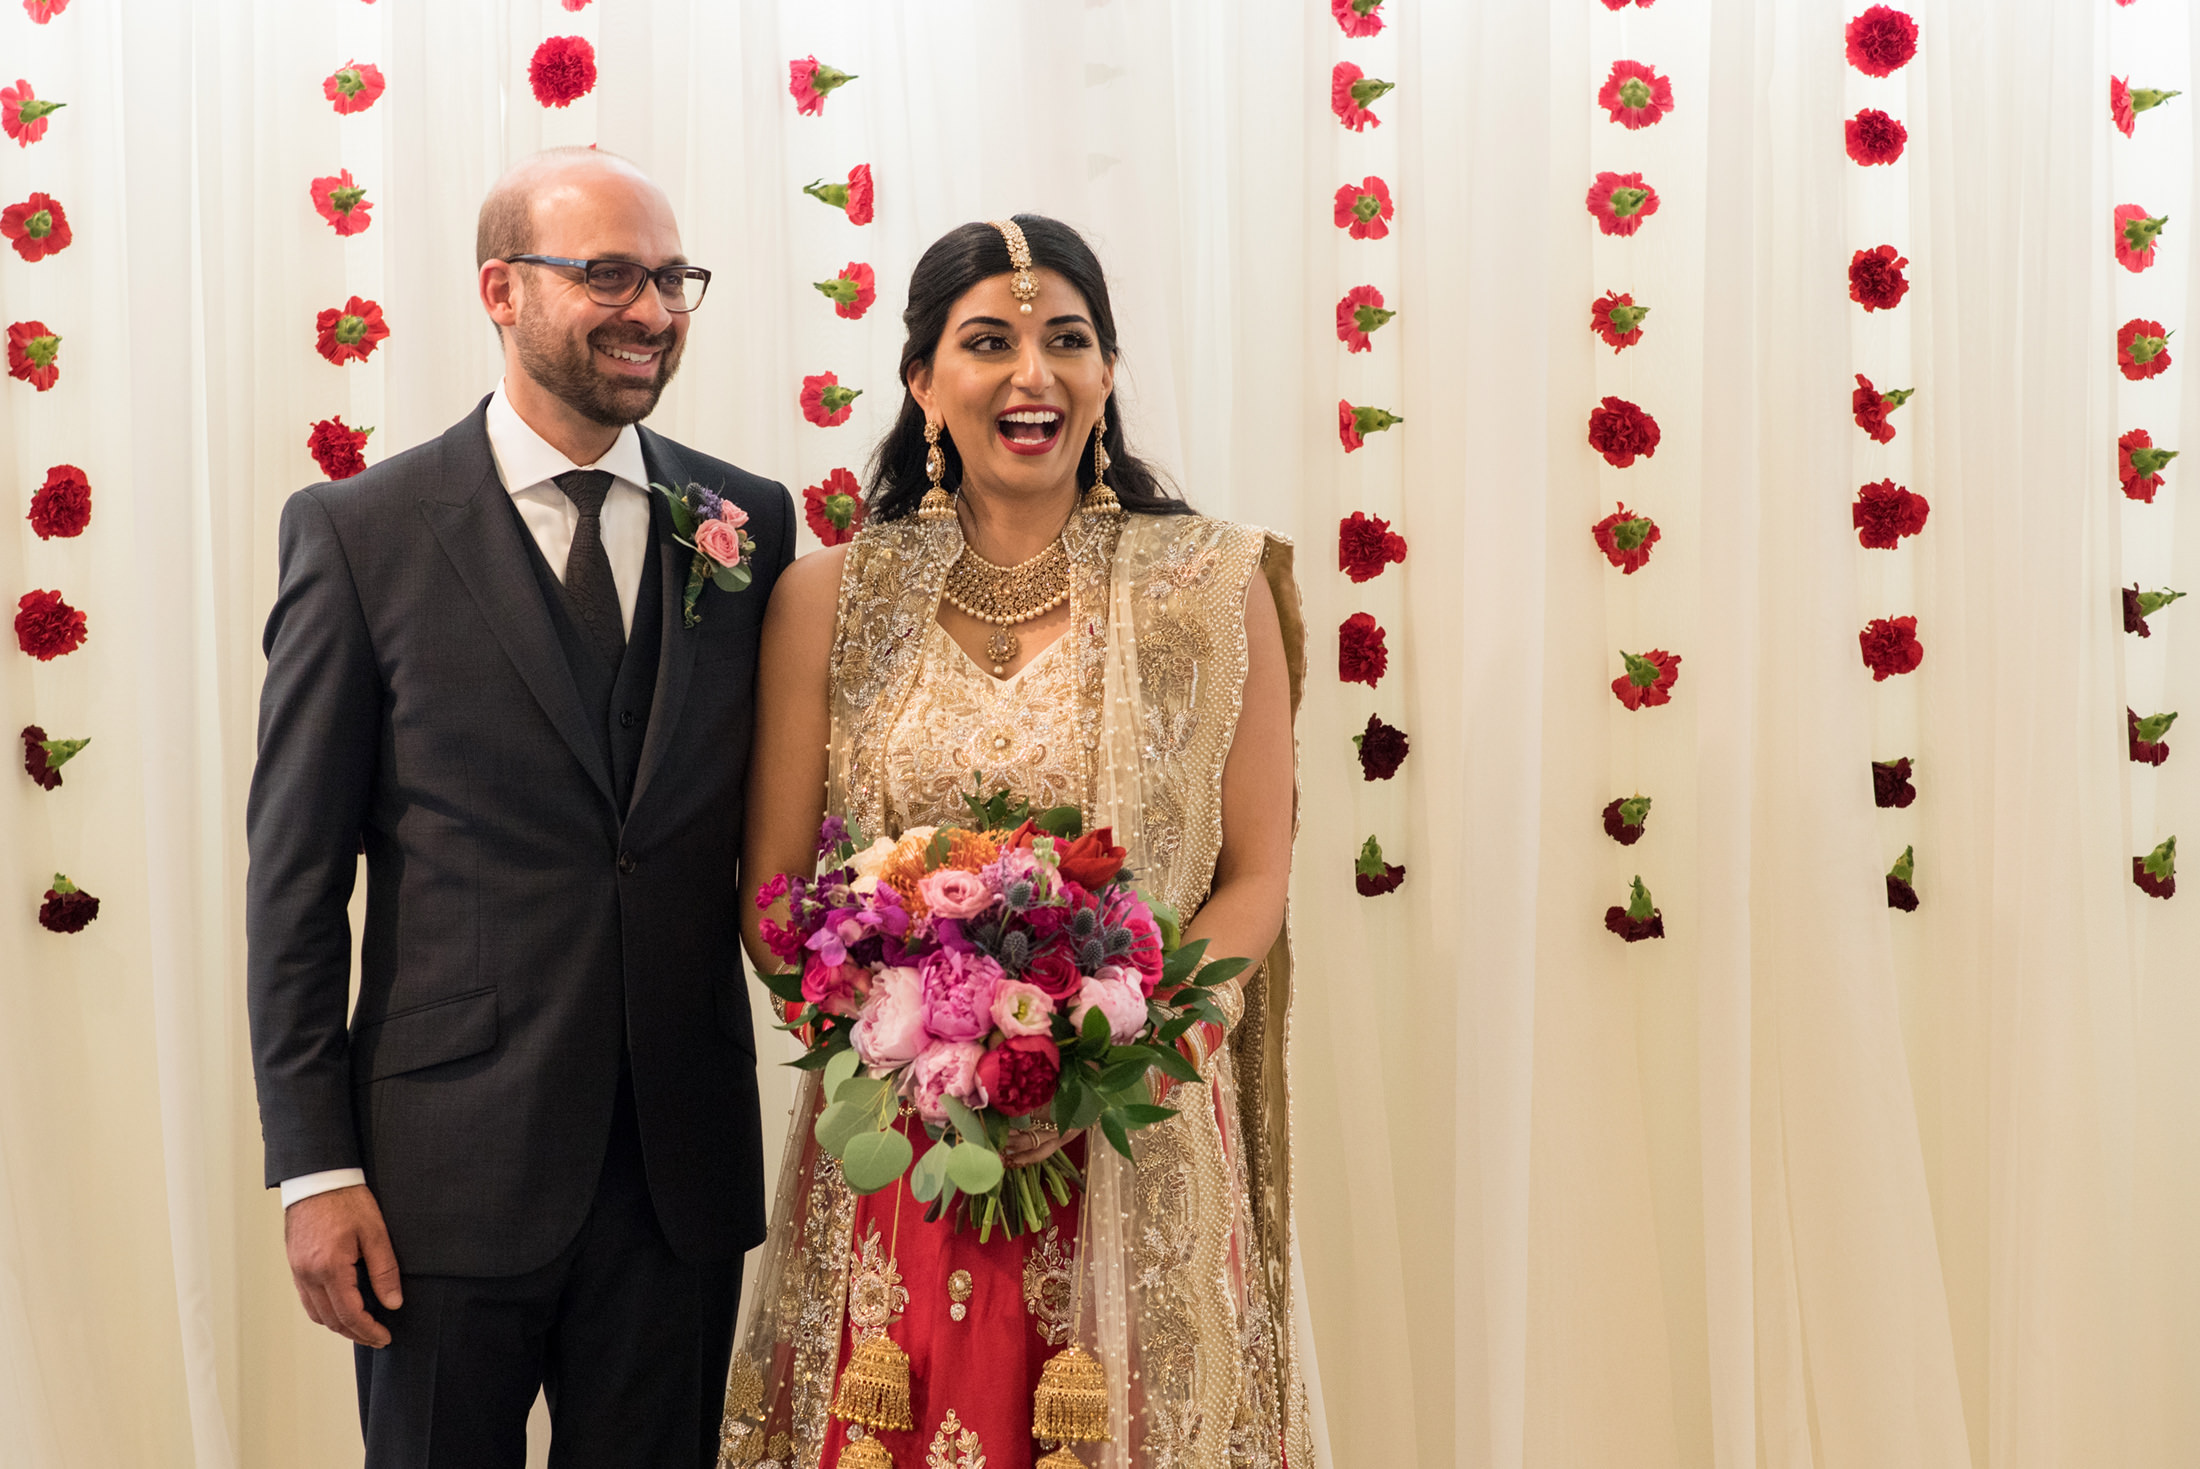 Edmonton_wedding_photographers_enjoy_center_wedding_Kiran_faisal_25.jpg